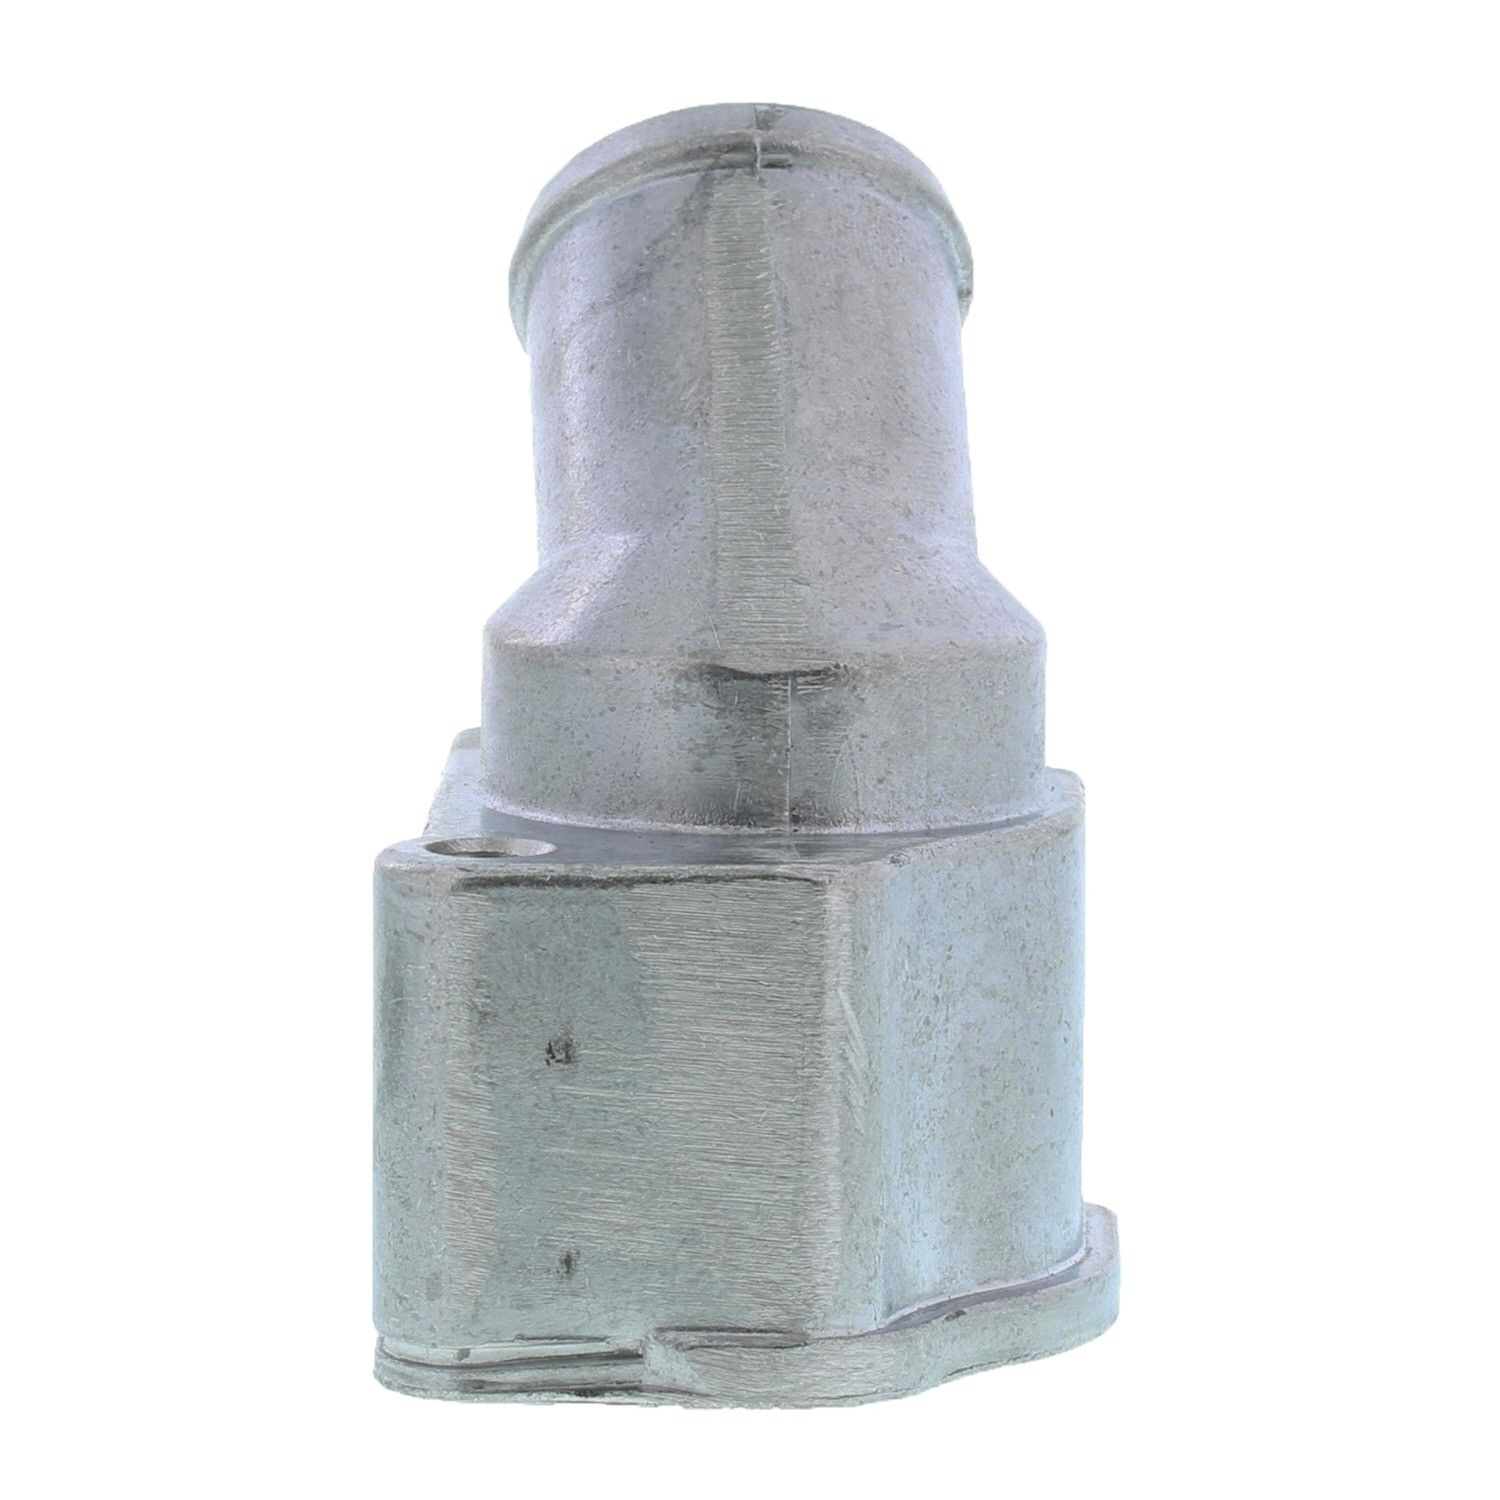 1999 Daewoo Nubira Engine Coolant Thermostat (Motorad 347-192) Includes  housing & gasket 192F OEM Recommended Temp .